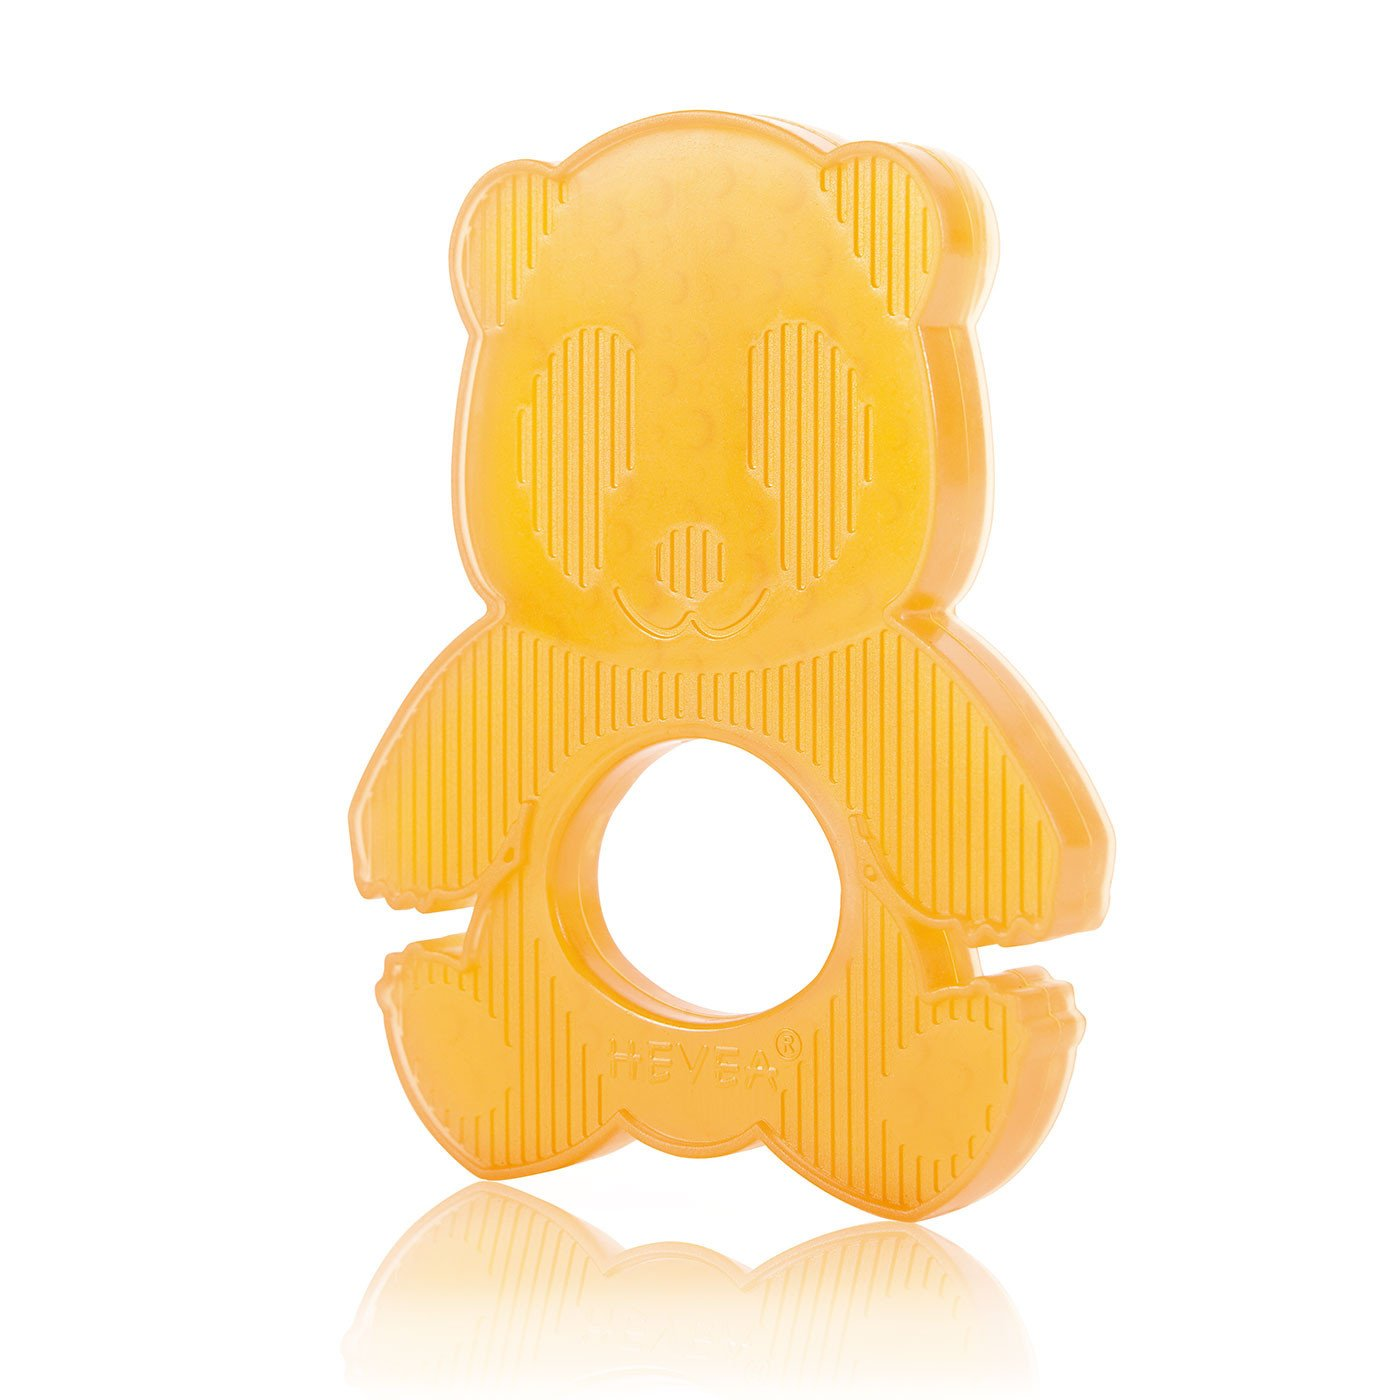 Hevea Natural Rubber Panda Teether   - Hevea Baby - Little Earth Nest - 1